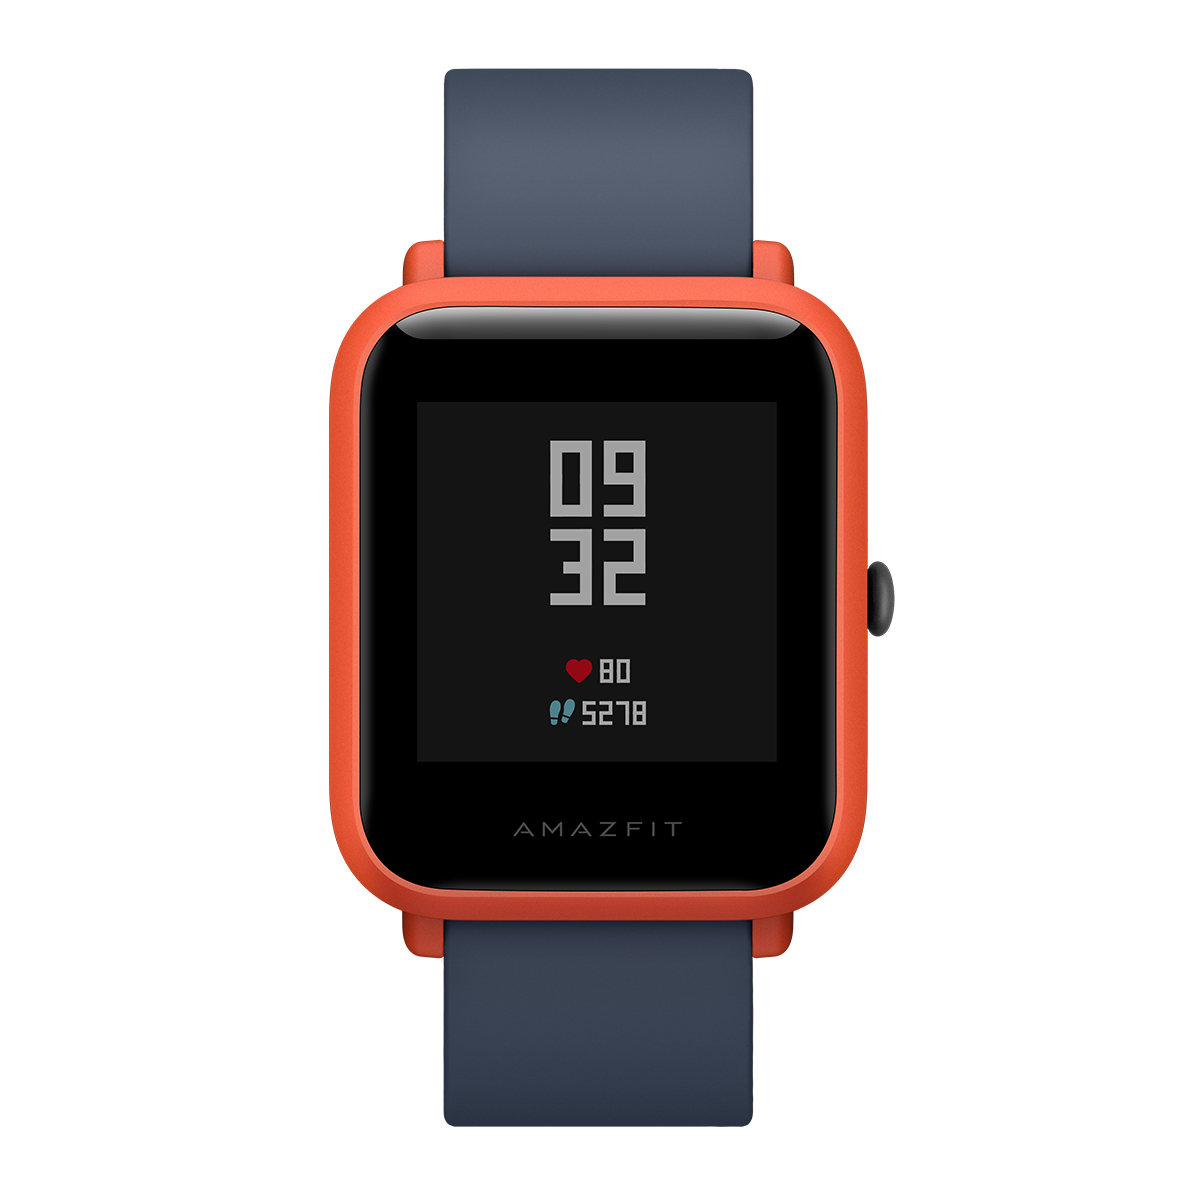 Table Jardin 8 Personnes Nouveau Smartwatch Xiaomi Huami Amazfit Bip International Version Ip68 Waterproof Bluetooth 4 0 Gps orange Of 34 Charmant Table Jardin 8 Personnes